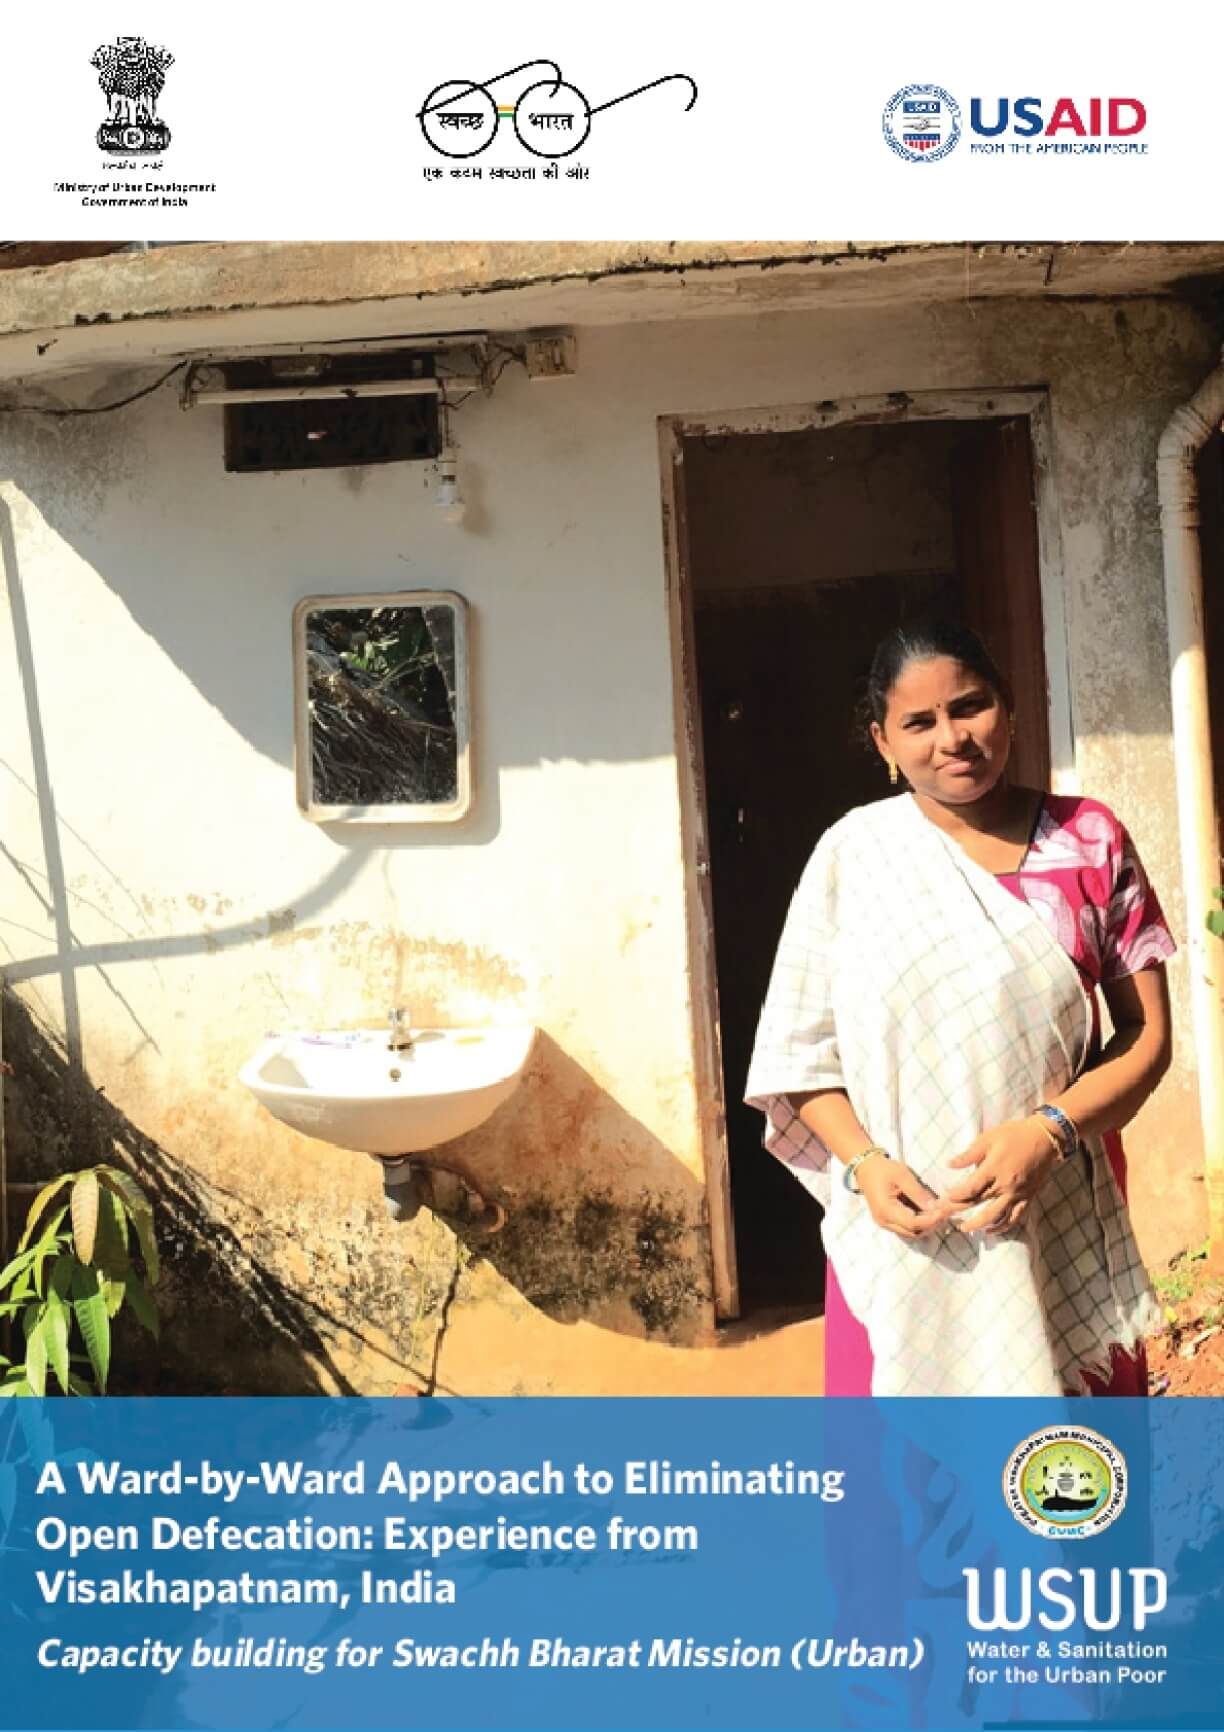 A Ward-by-Ward Approach to Eliminating Open Defecation: Experience from Visakhapatnam, India